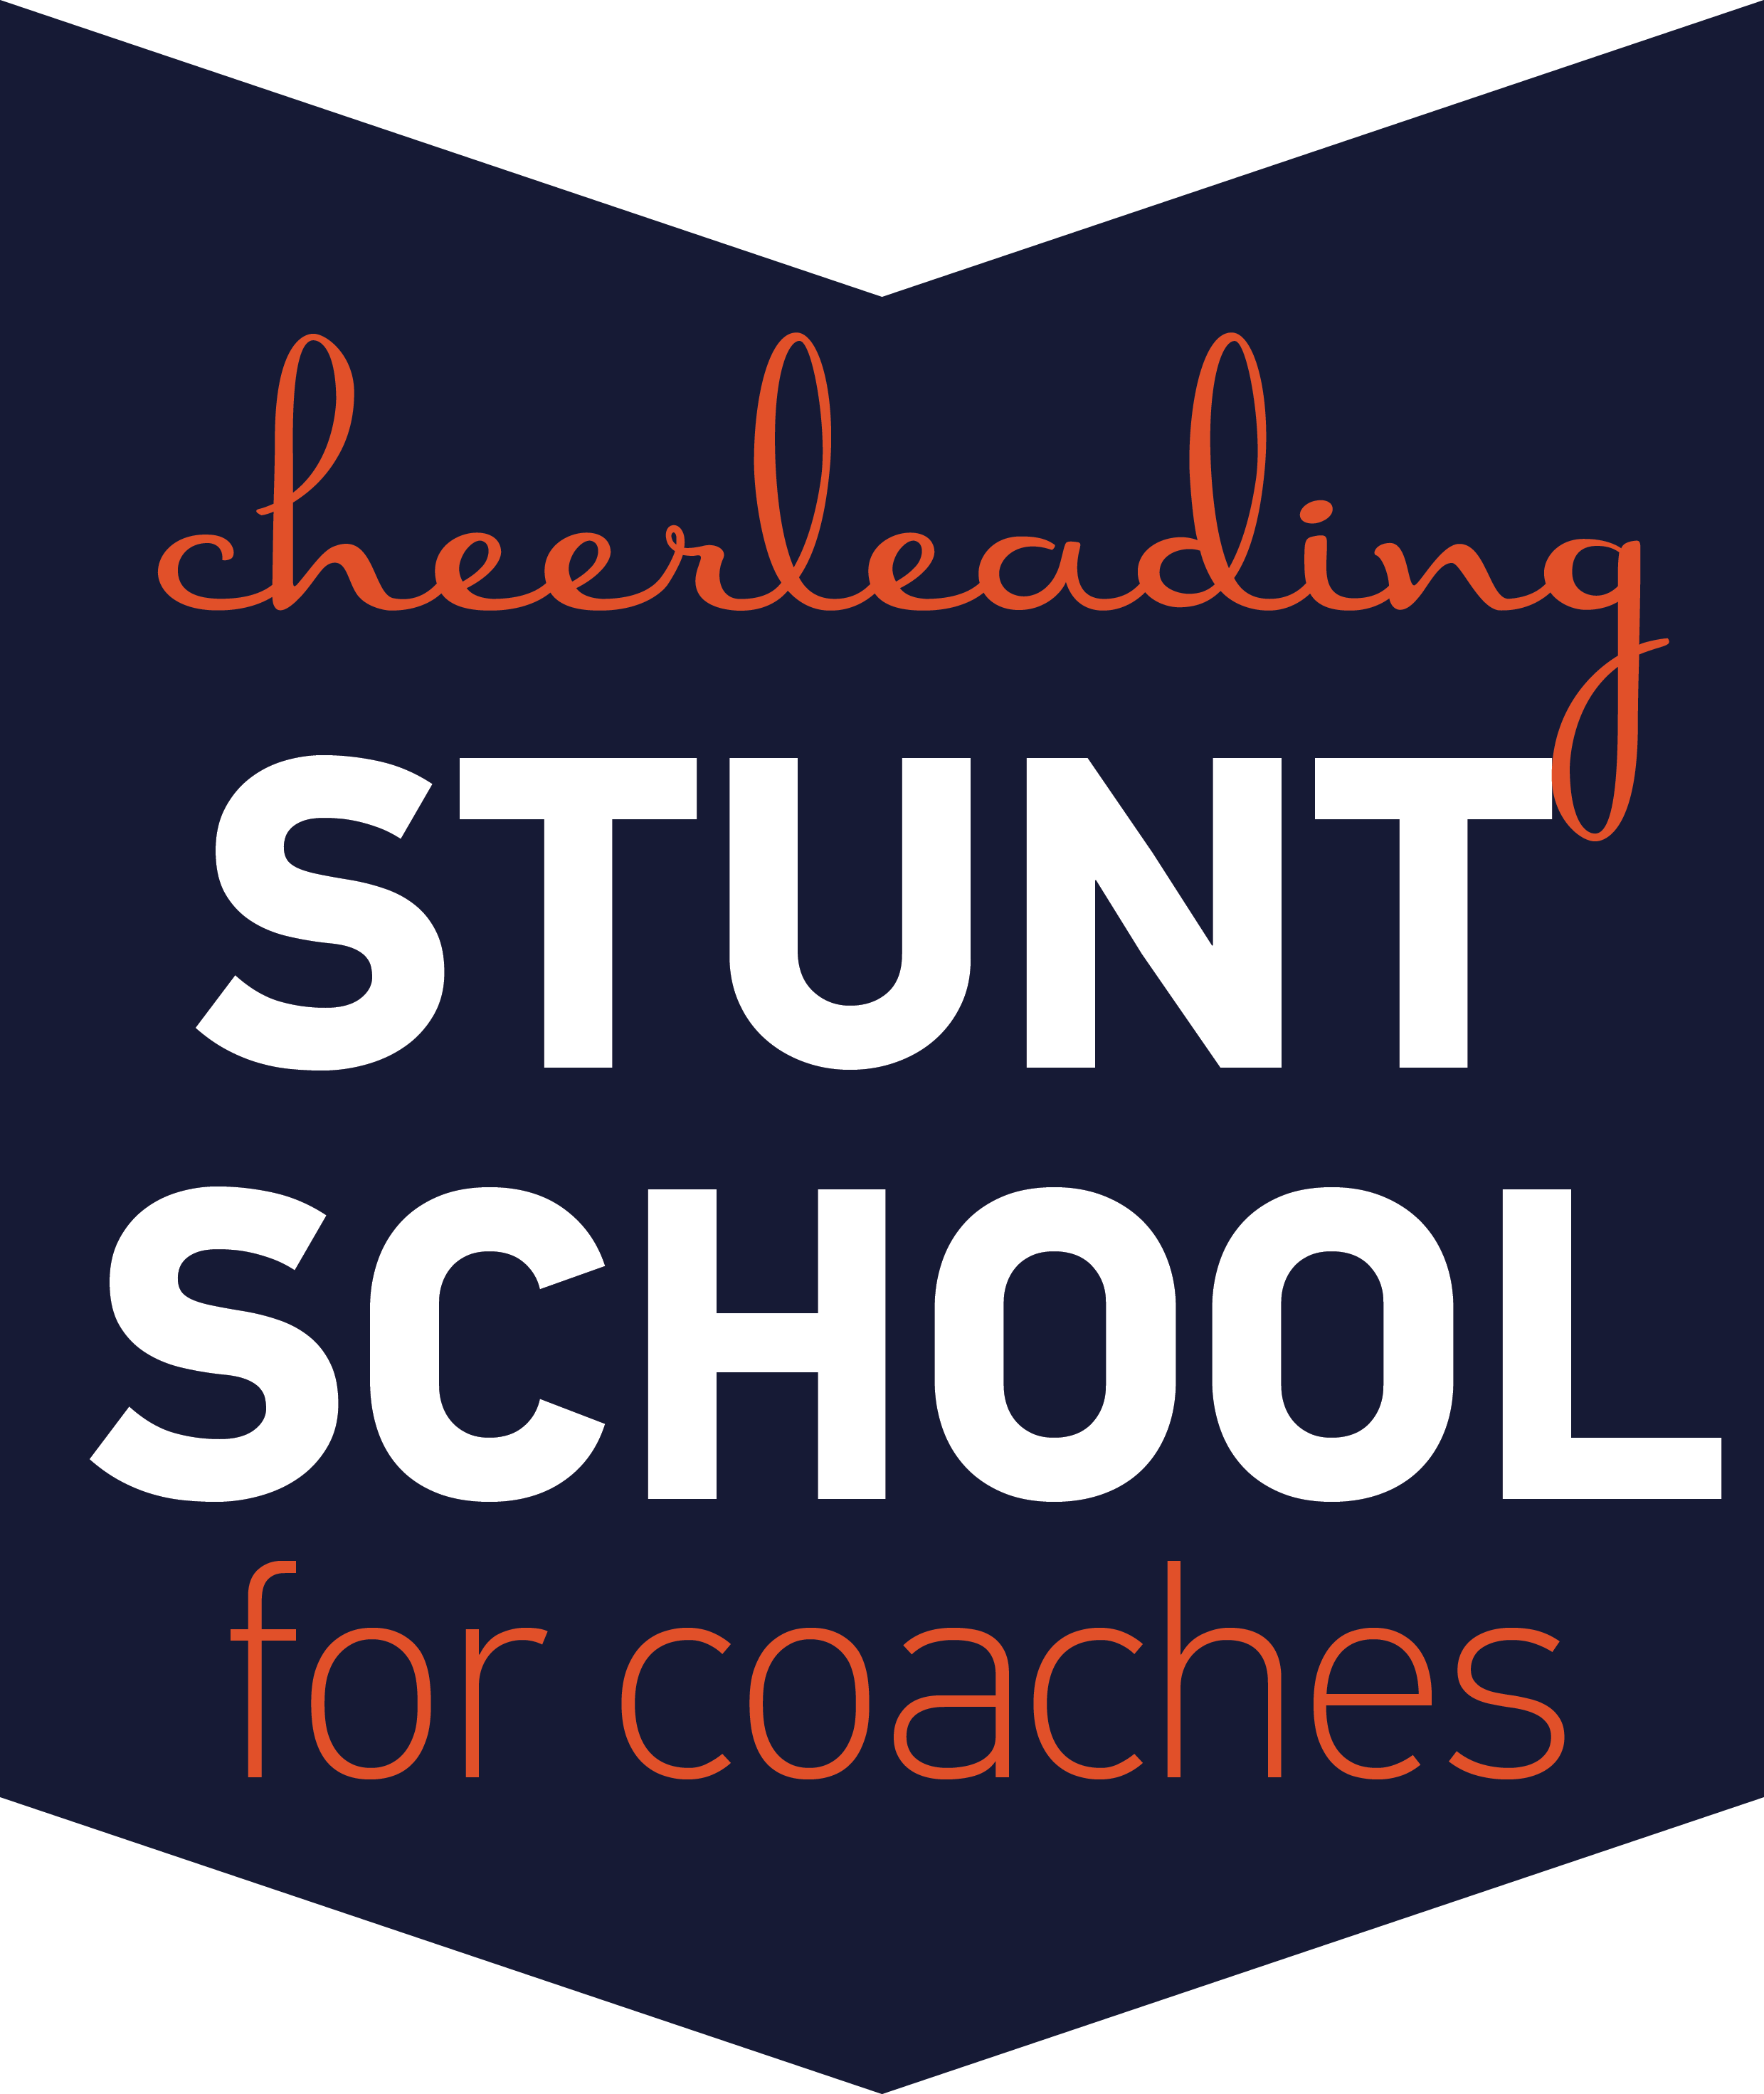 The critical cheerleading stunts you must master first — Kate Boyd Cheerleading #cheerleadingstunting